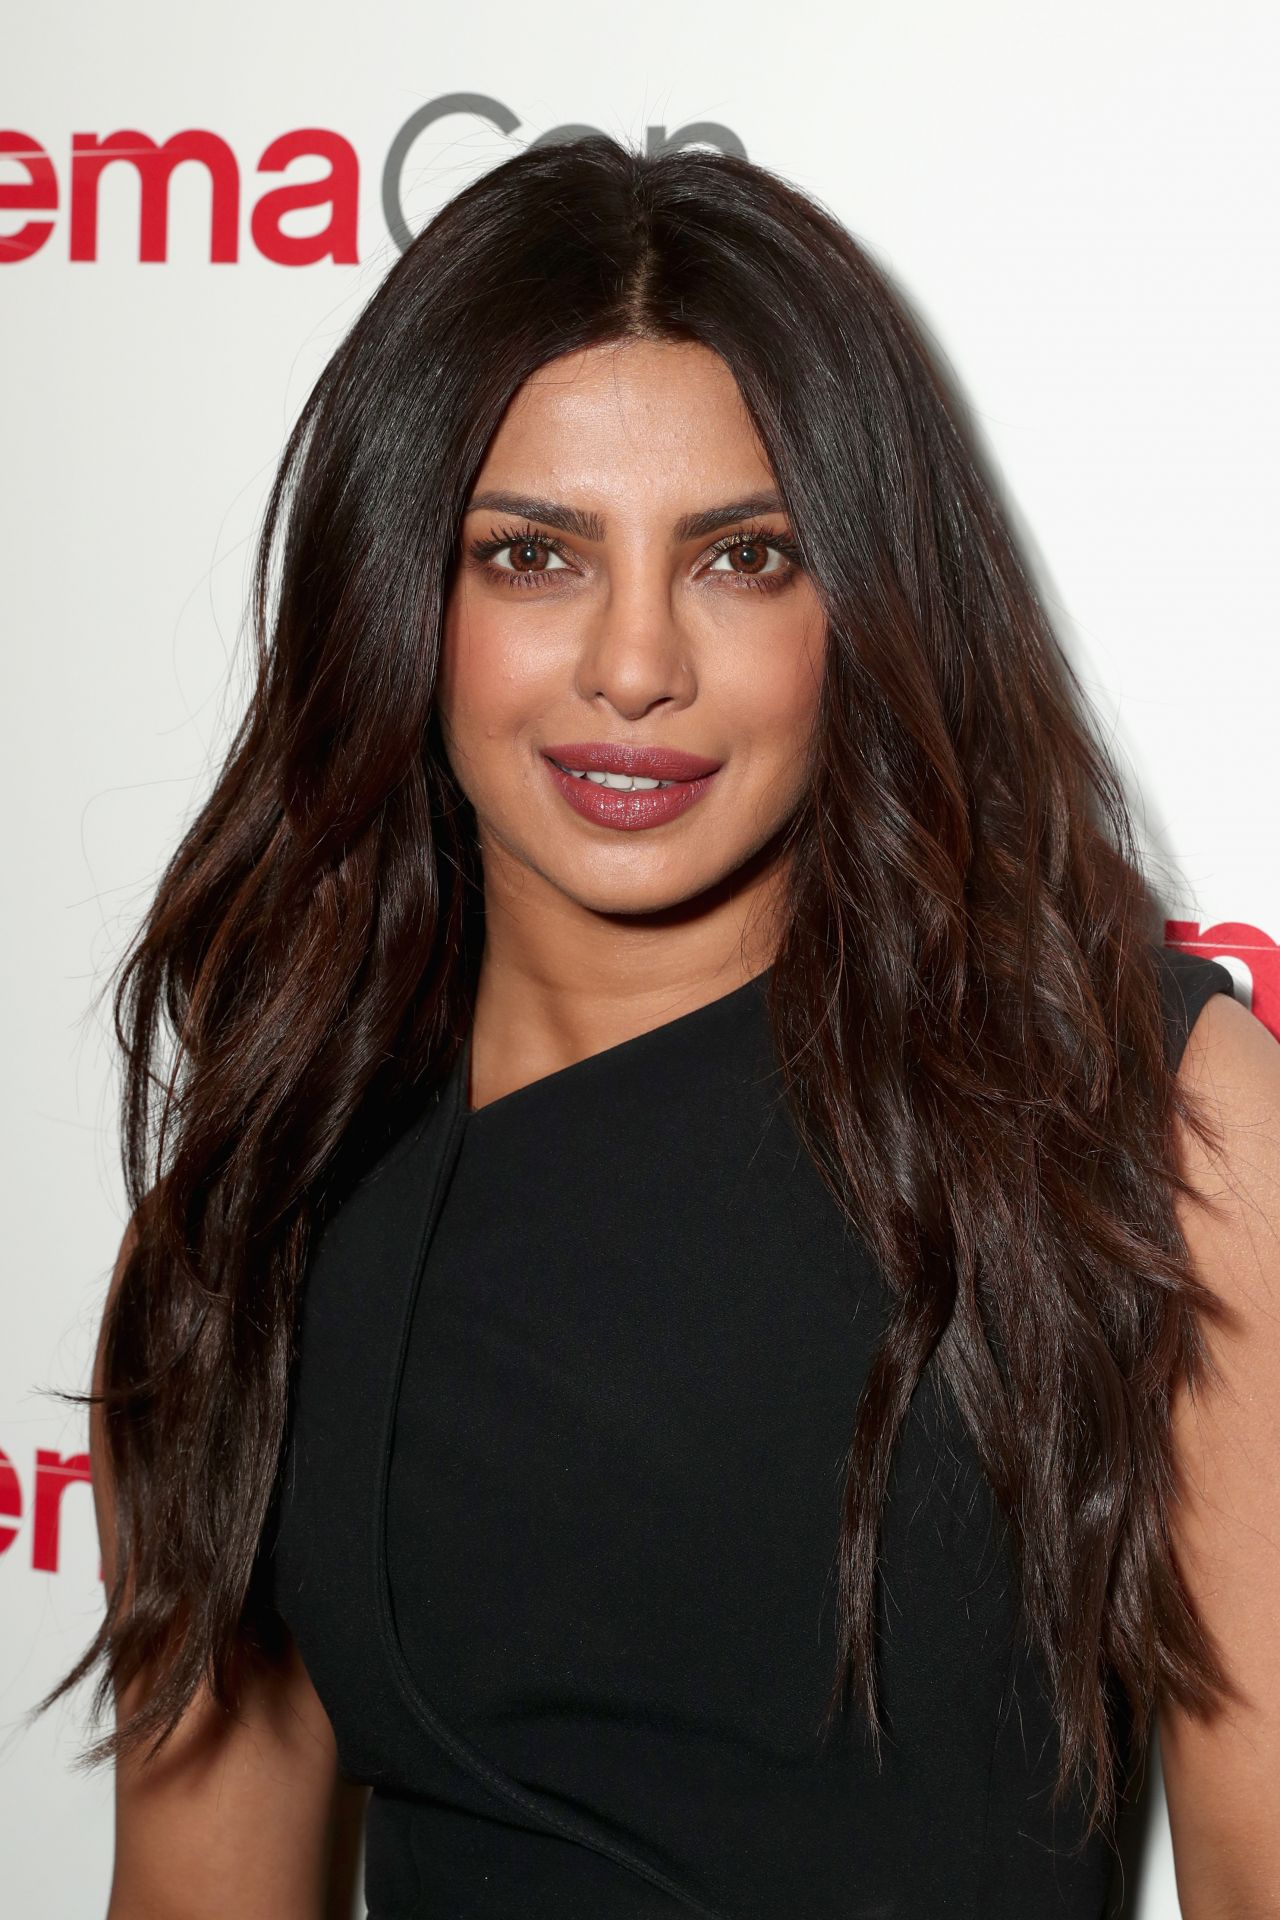 priyanka chopra - photo #27